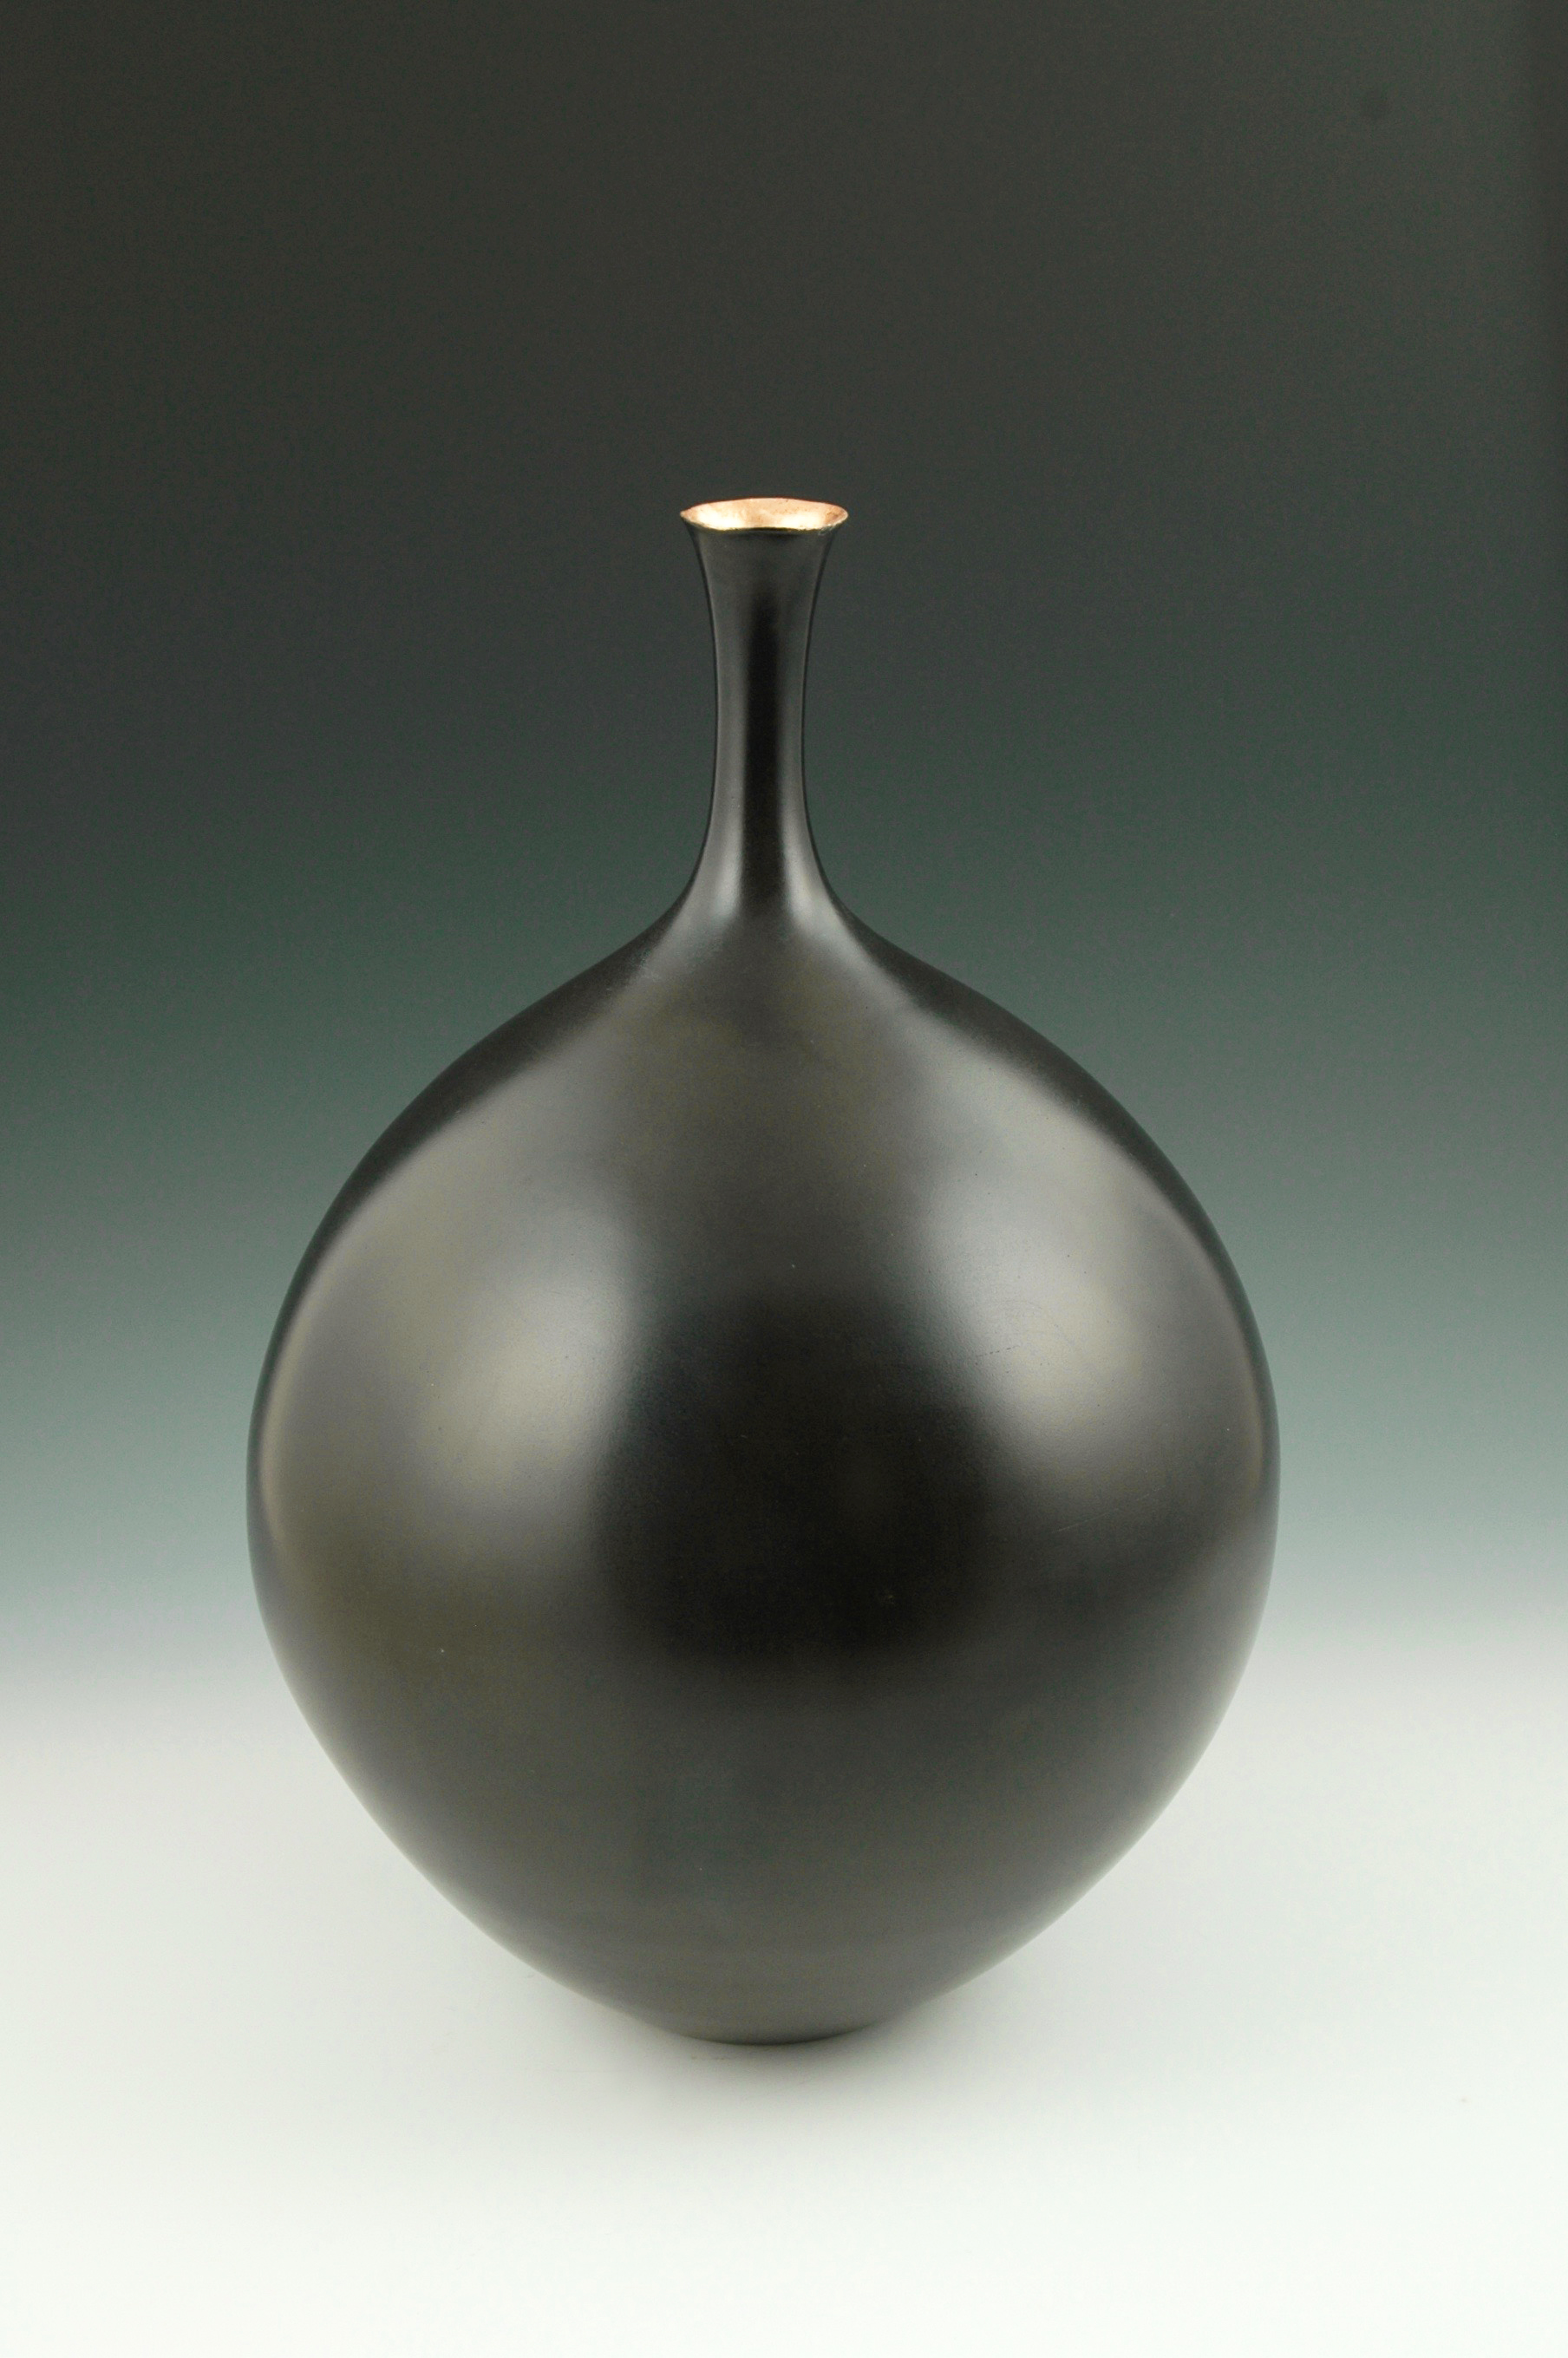 Burnished Smoke-fired Vessel with Gold Leaf by Judy Blake